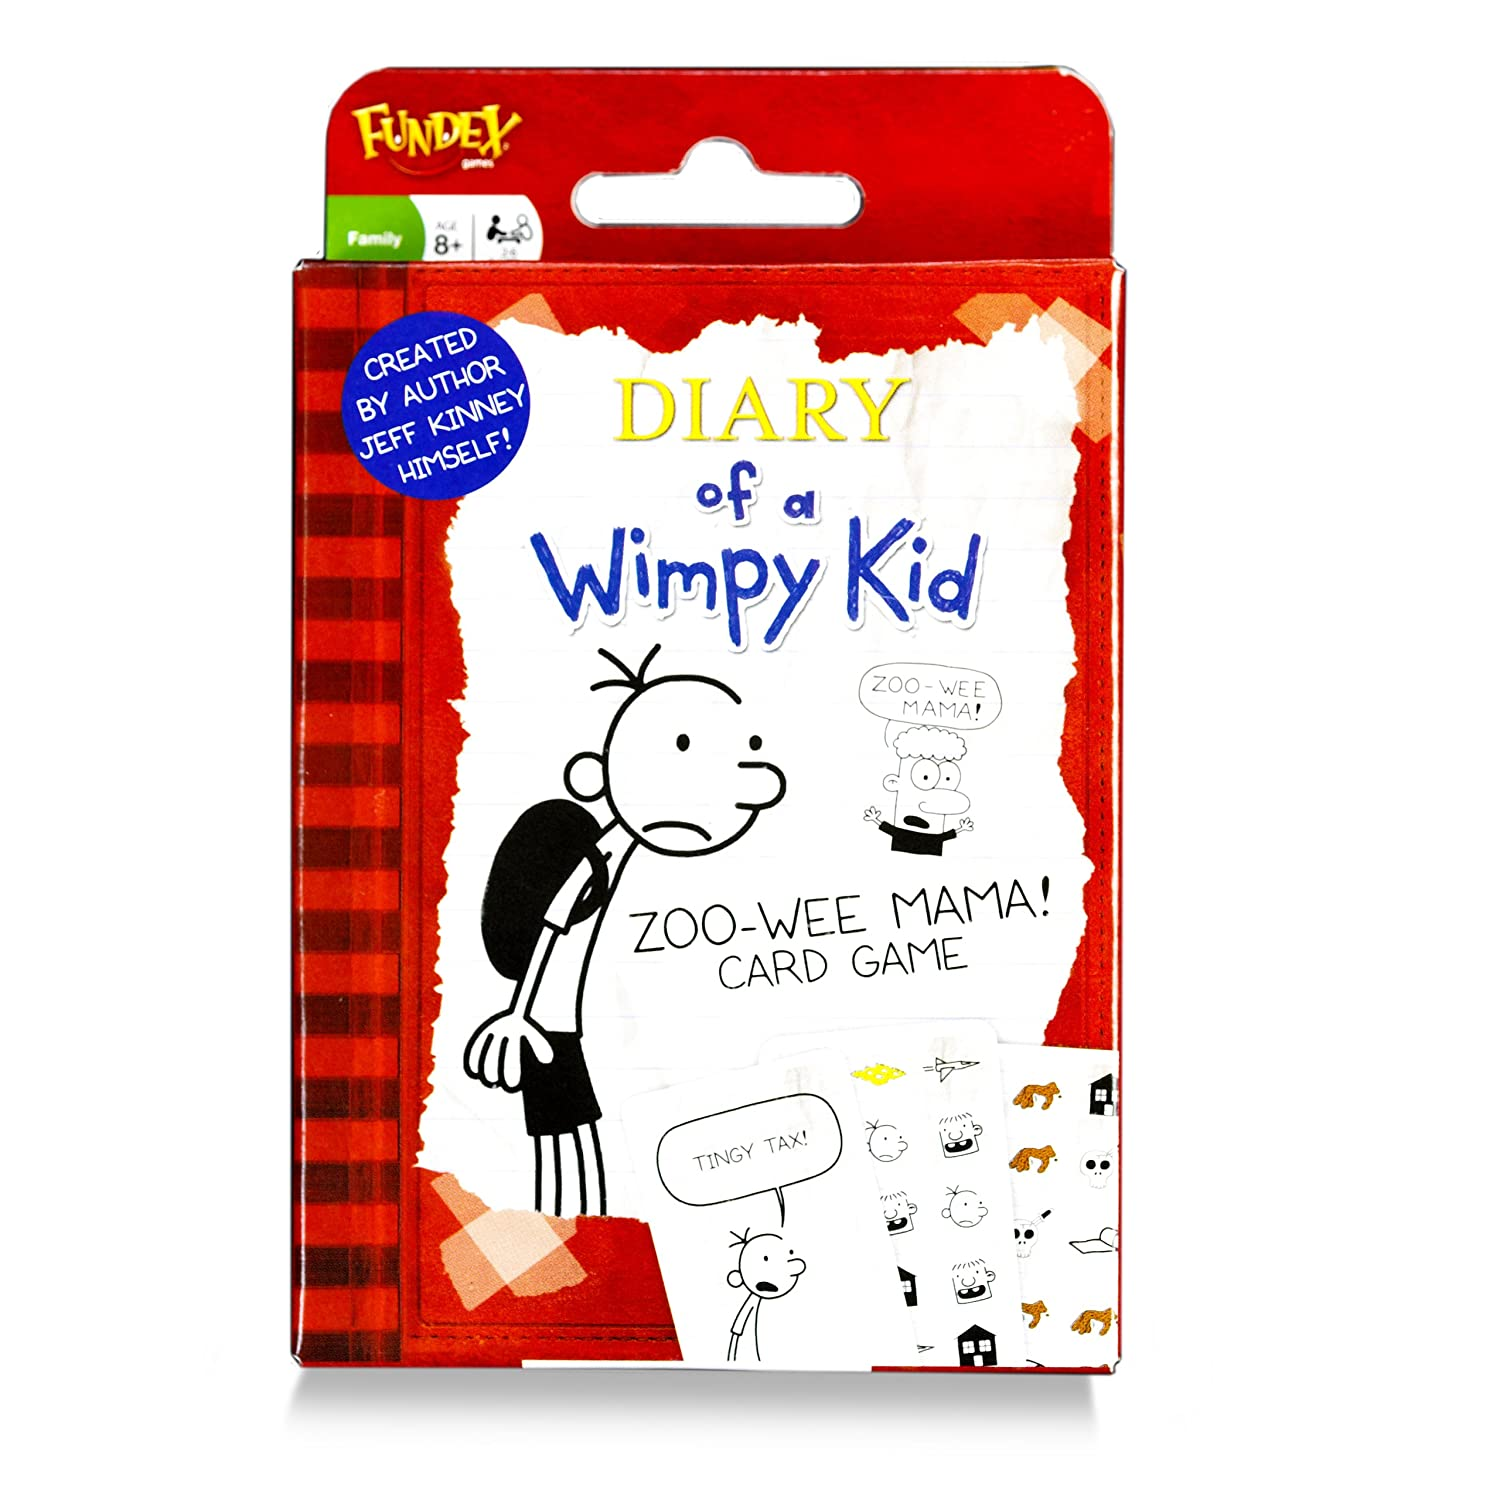 Paul Lamond Wimpy Kid Zoo Wee Mama Card Game: Amazon.co.uk: Toys & Games